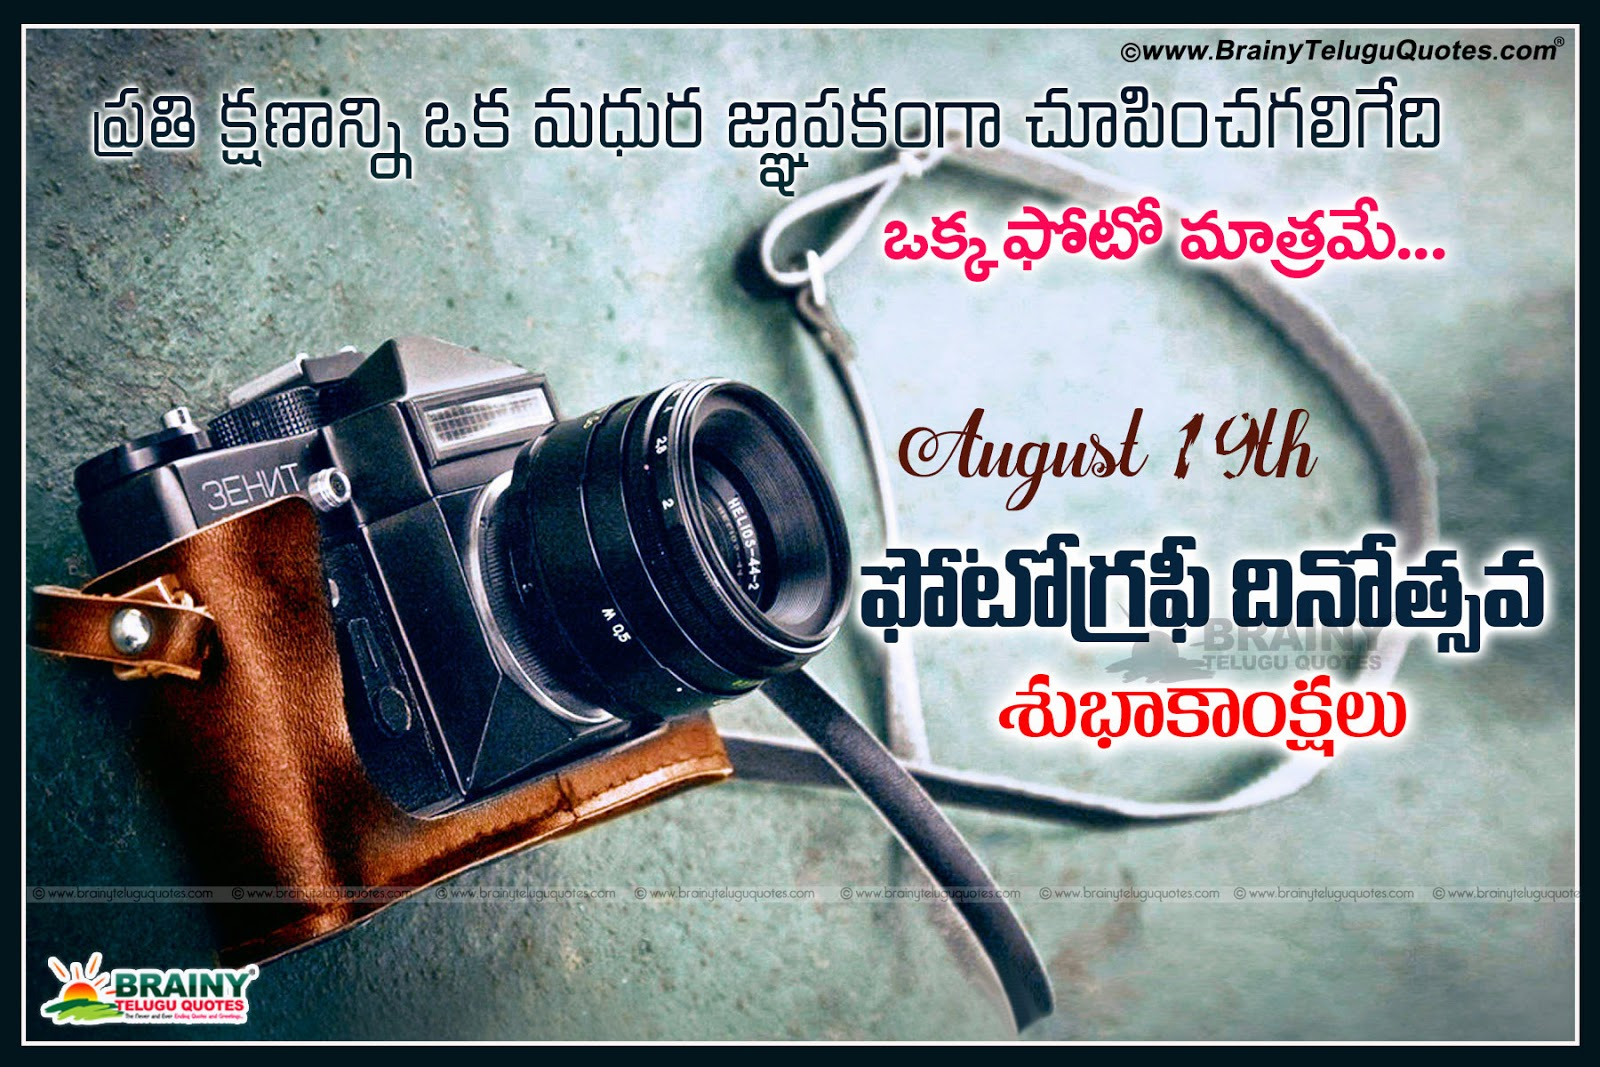 August 19 Happy World Photography Day Wishes Quotes And Greetings Images Brainyteluguquotes Comtelugu Quotes English Quotes Hindi Quotes Tamil Quotes Greetings